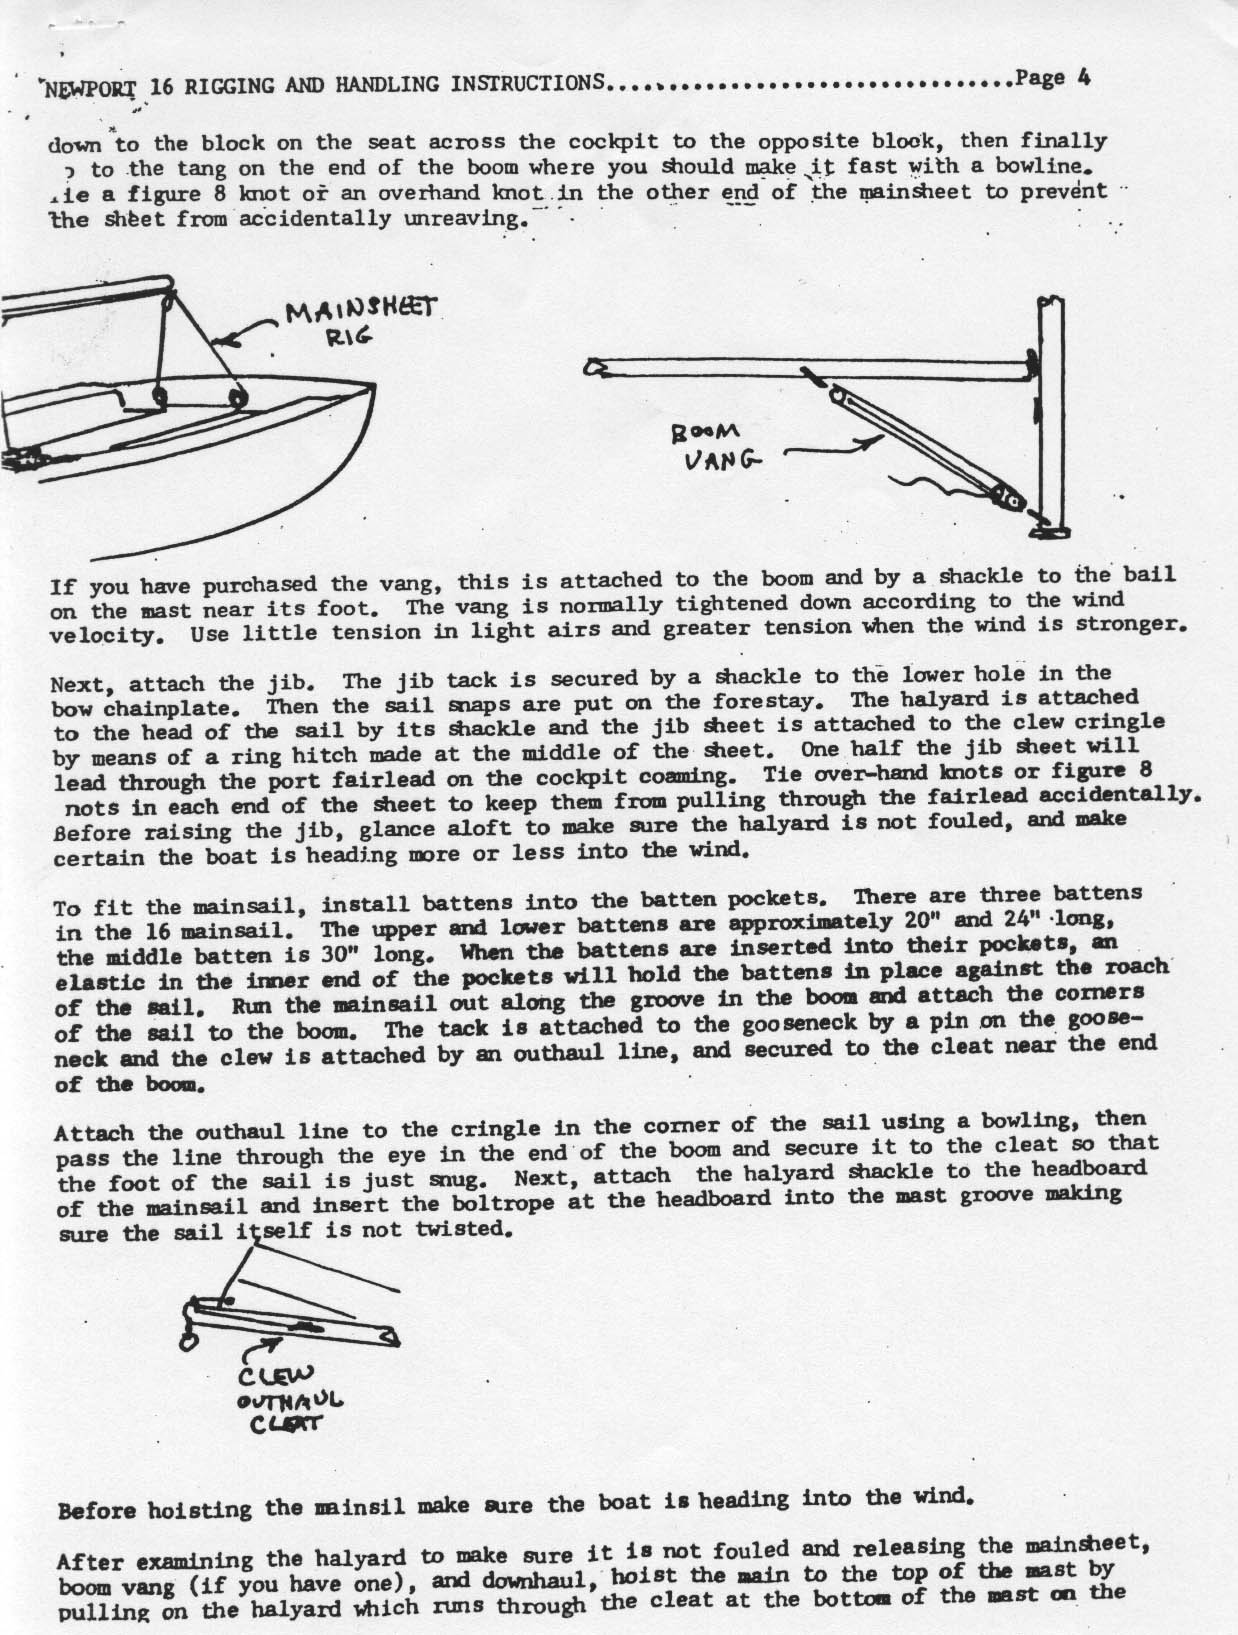 Newport Resources Running Bowline Knot Diagram And Boat Pictures